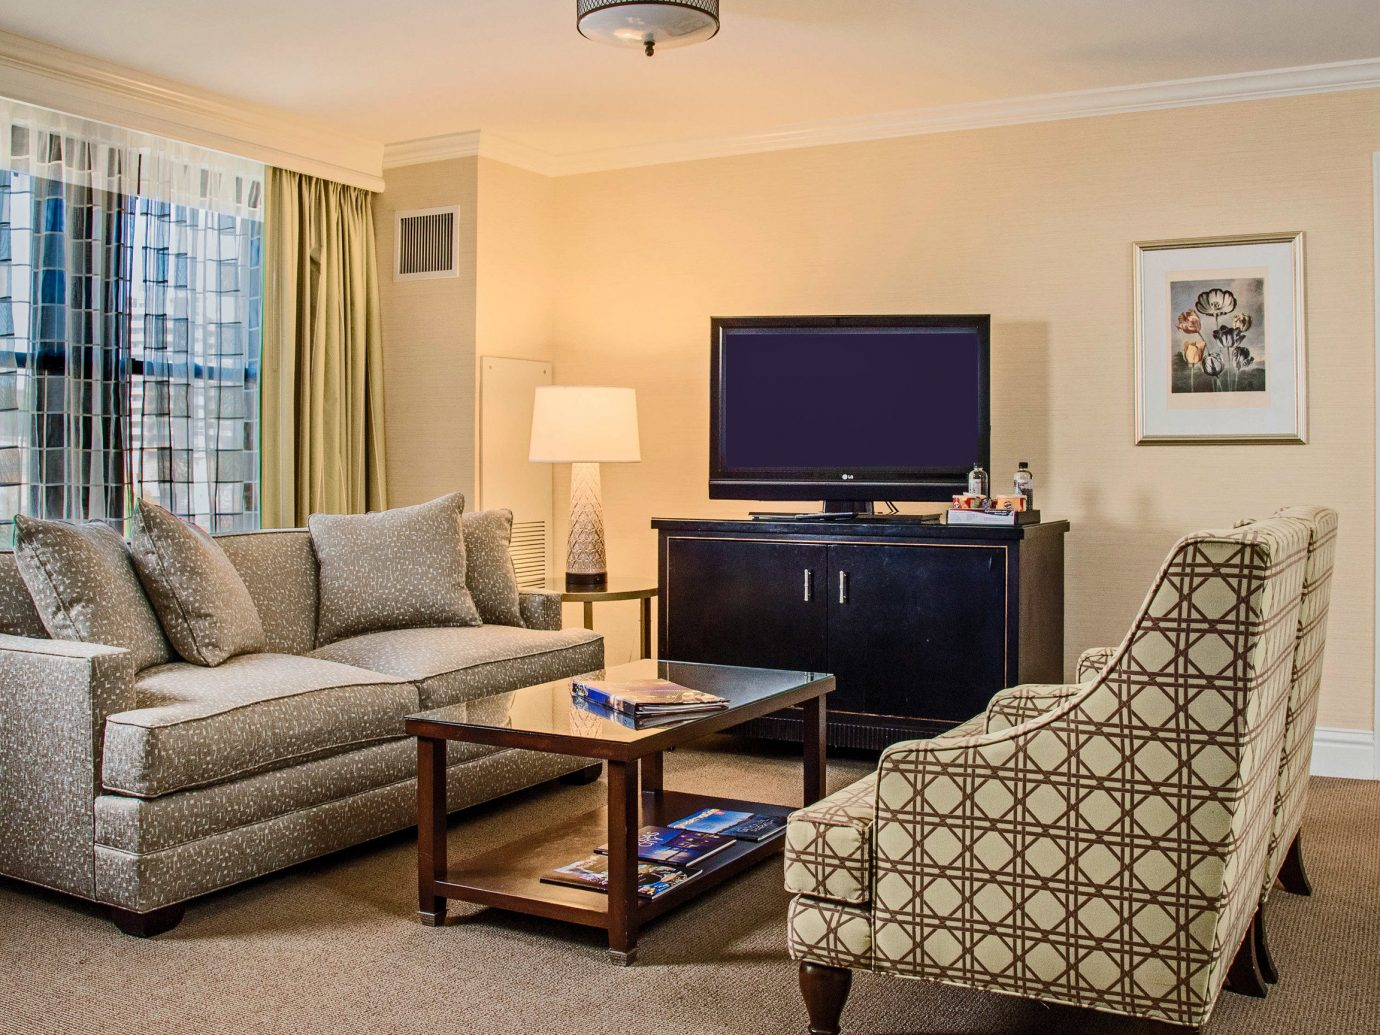 City Kansas City Midwest Trip Ideas floor indoor room wall Living sofa living room ceiling property window interior design Suite real estate furniture home hotel estate flooring area flat Bedroom Modern decorated